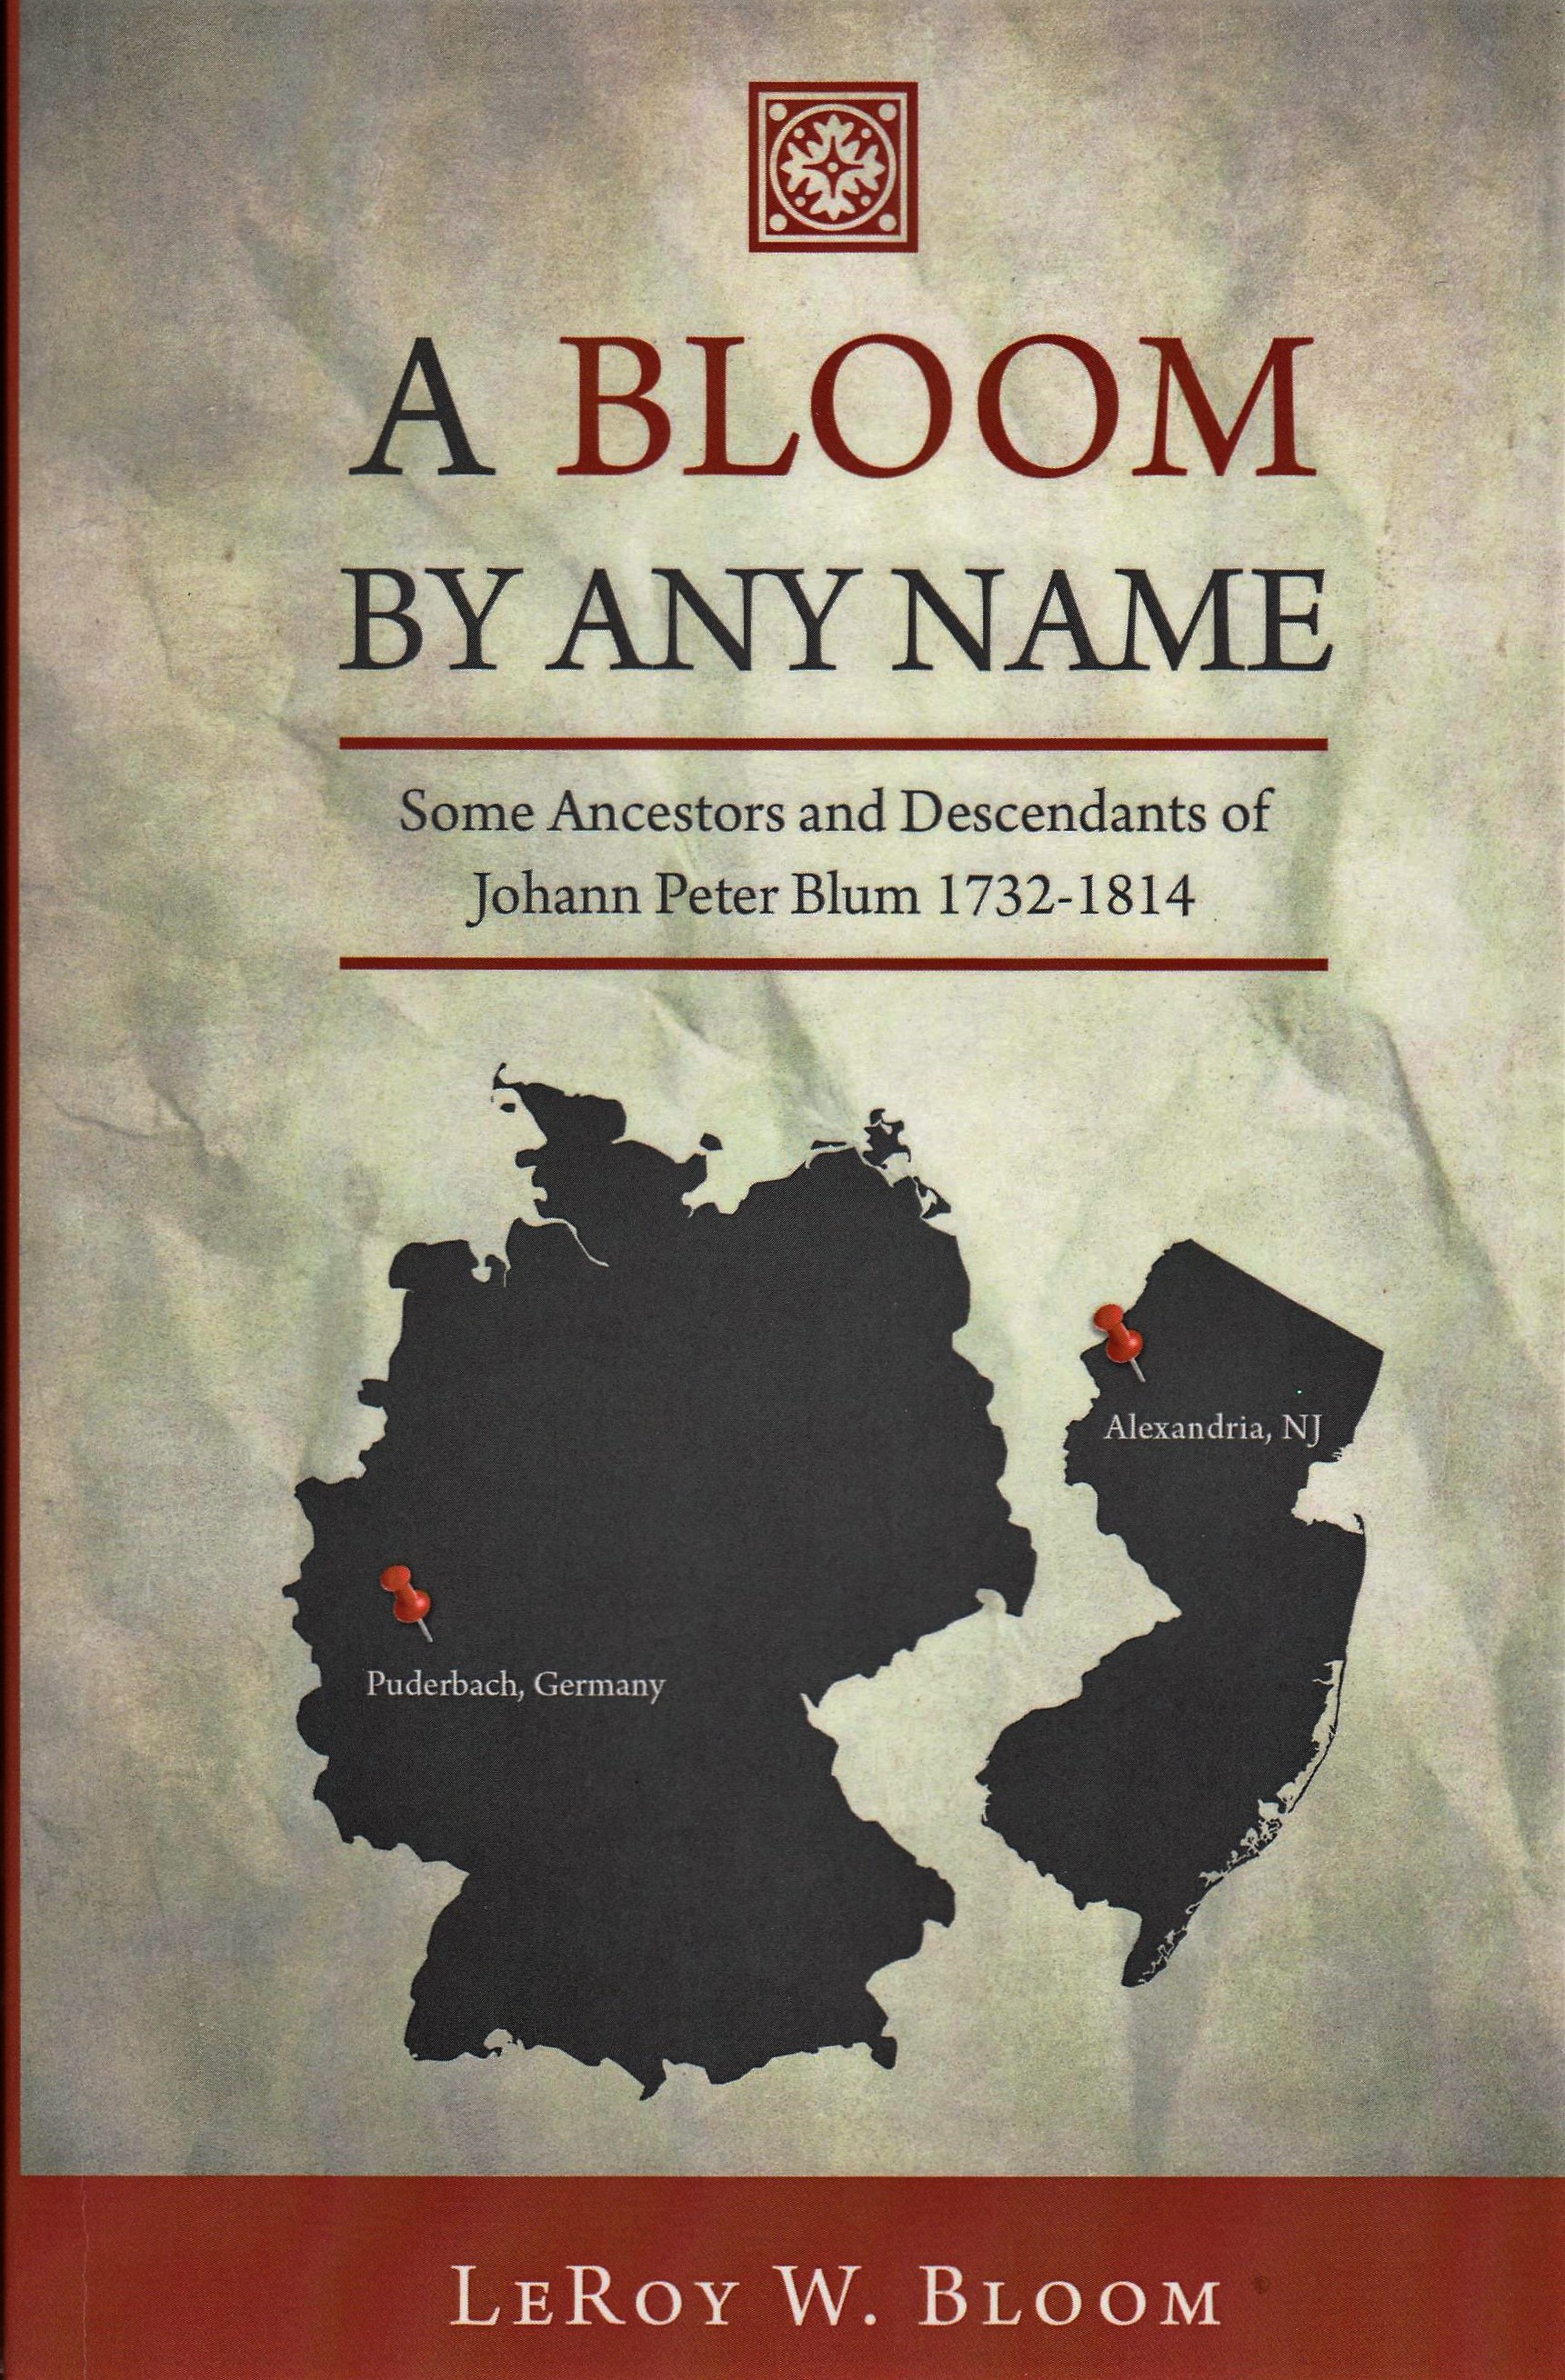 A BLOOM BY ANY NAME - by Leroy W. Bloom